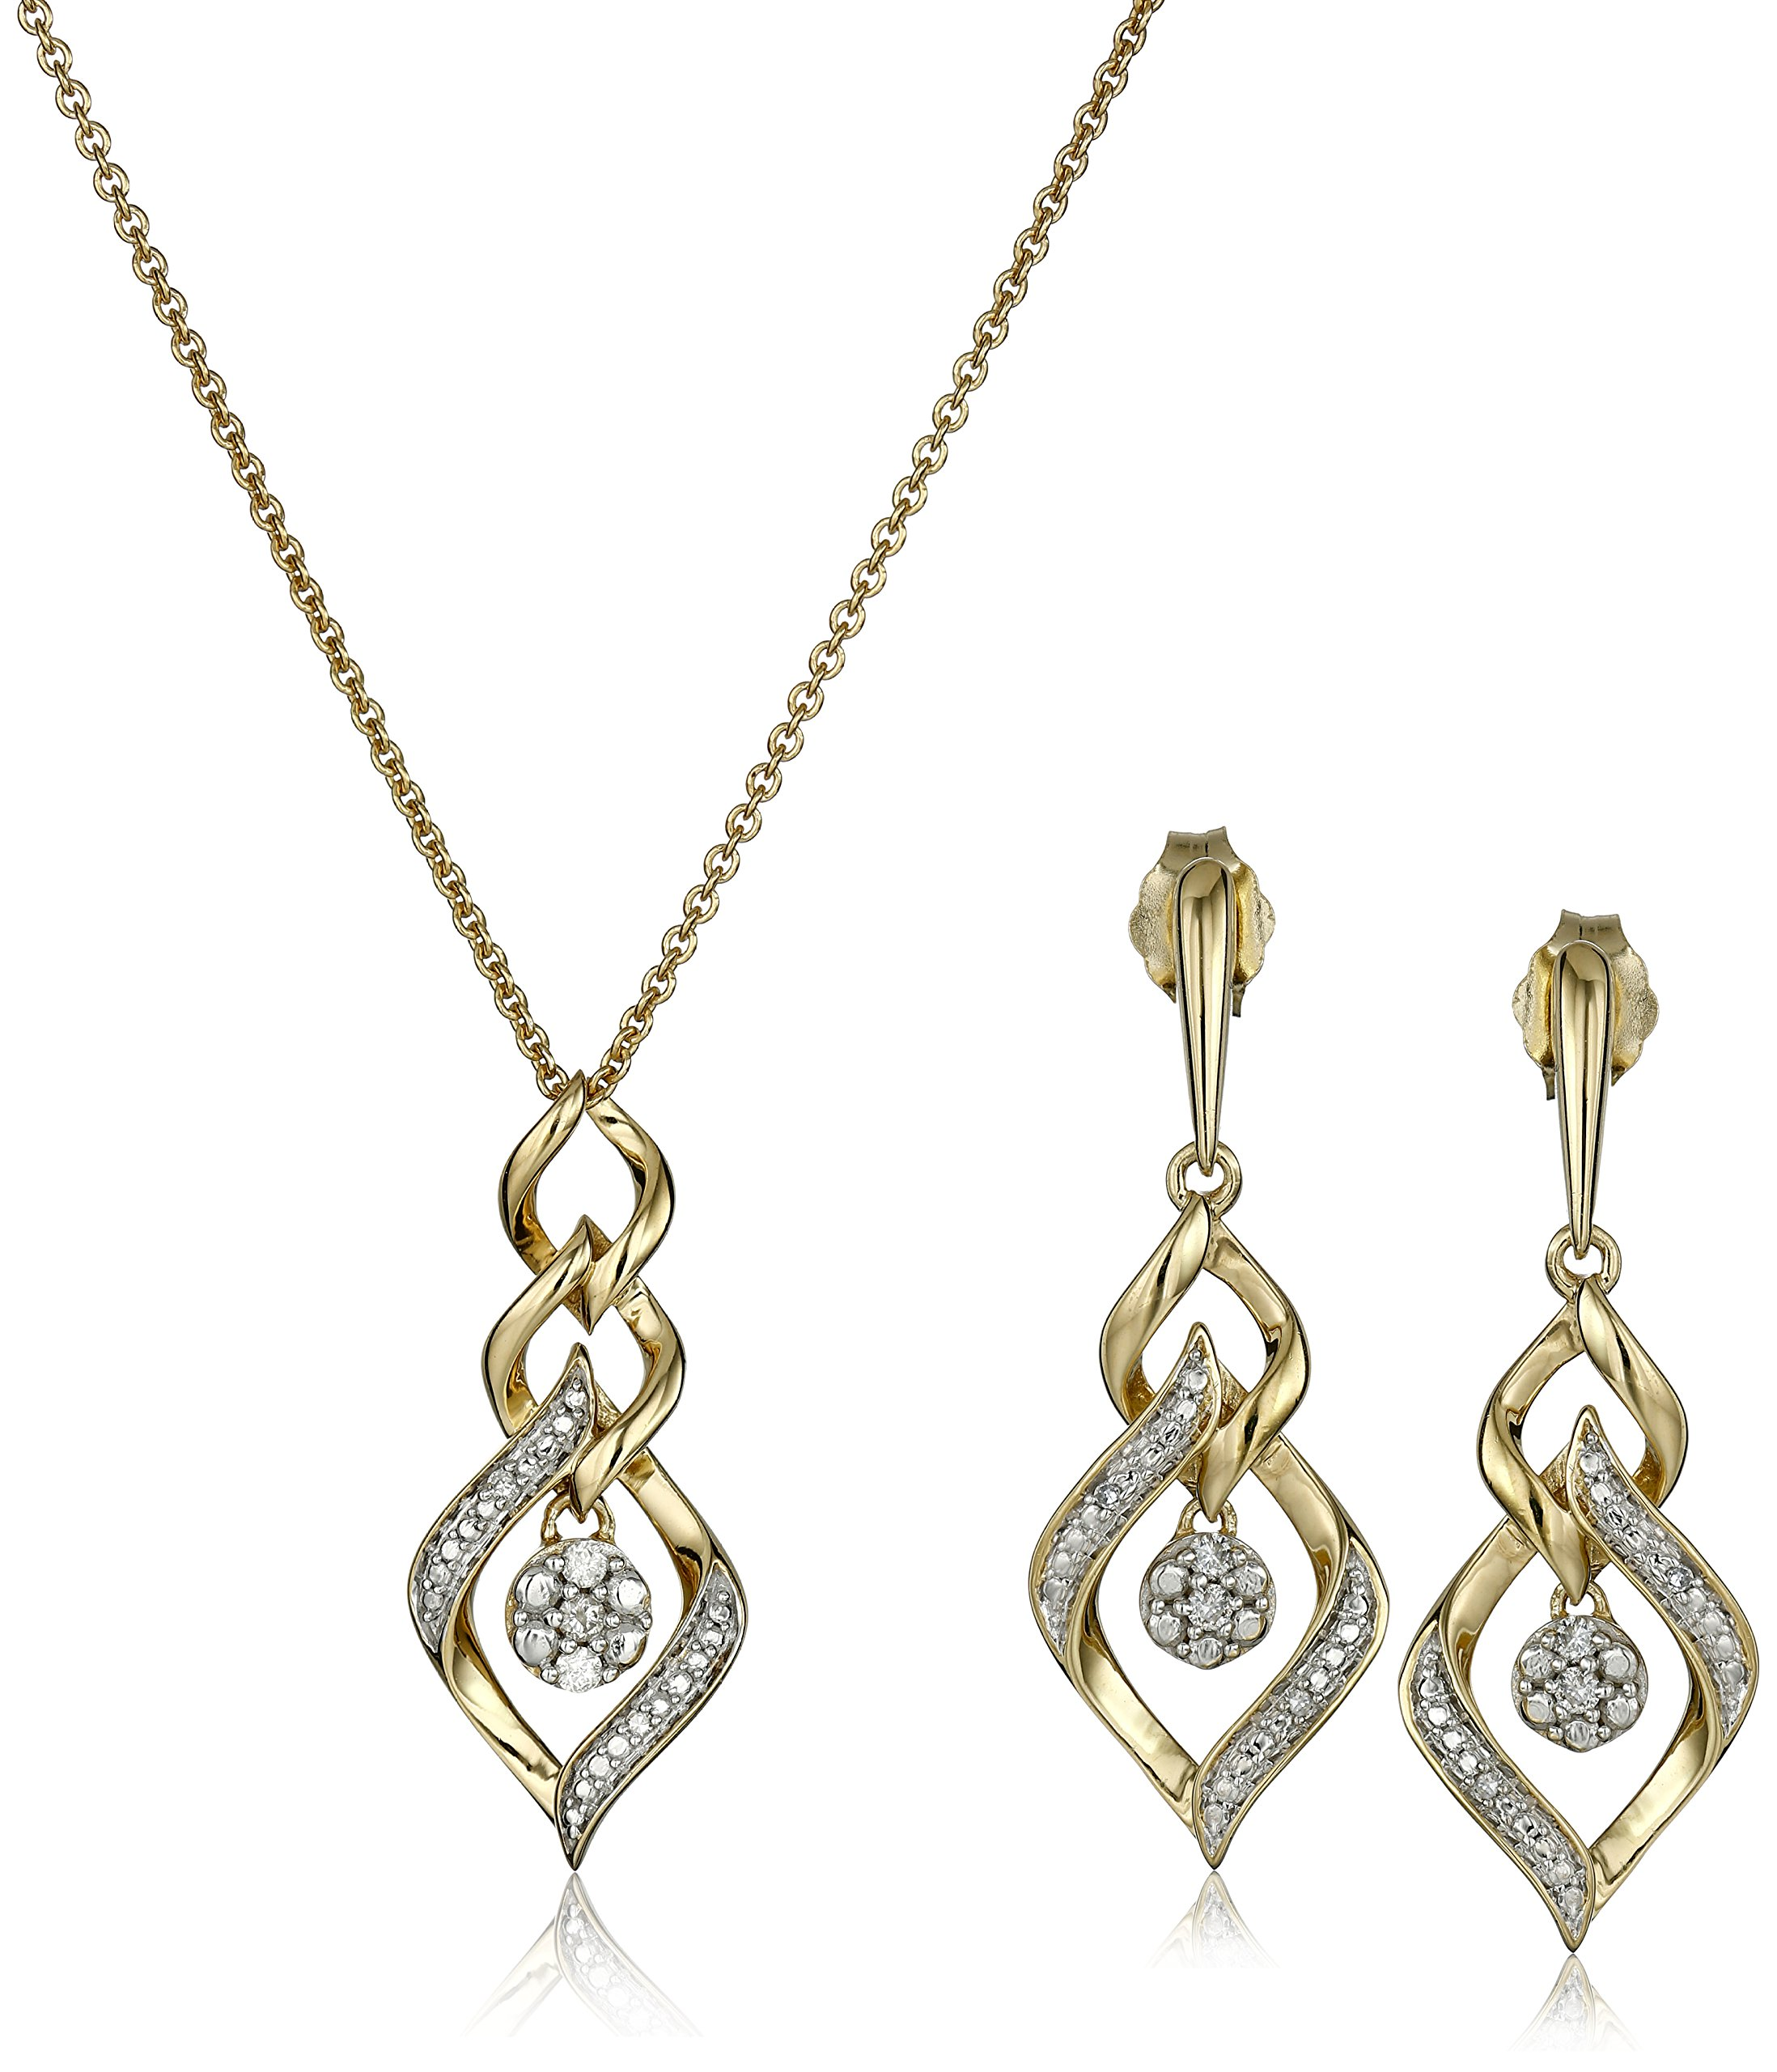 18K Yellow Gold over Sterling Silver Diamond Cluster Pendant Necklace and Earrings Box Set (1/10 cttw)